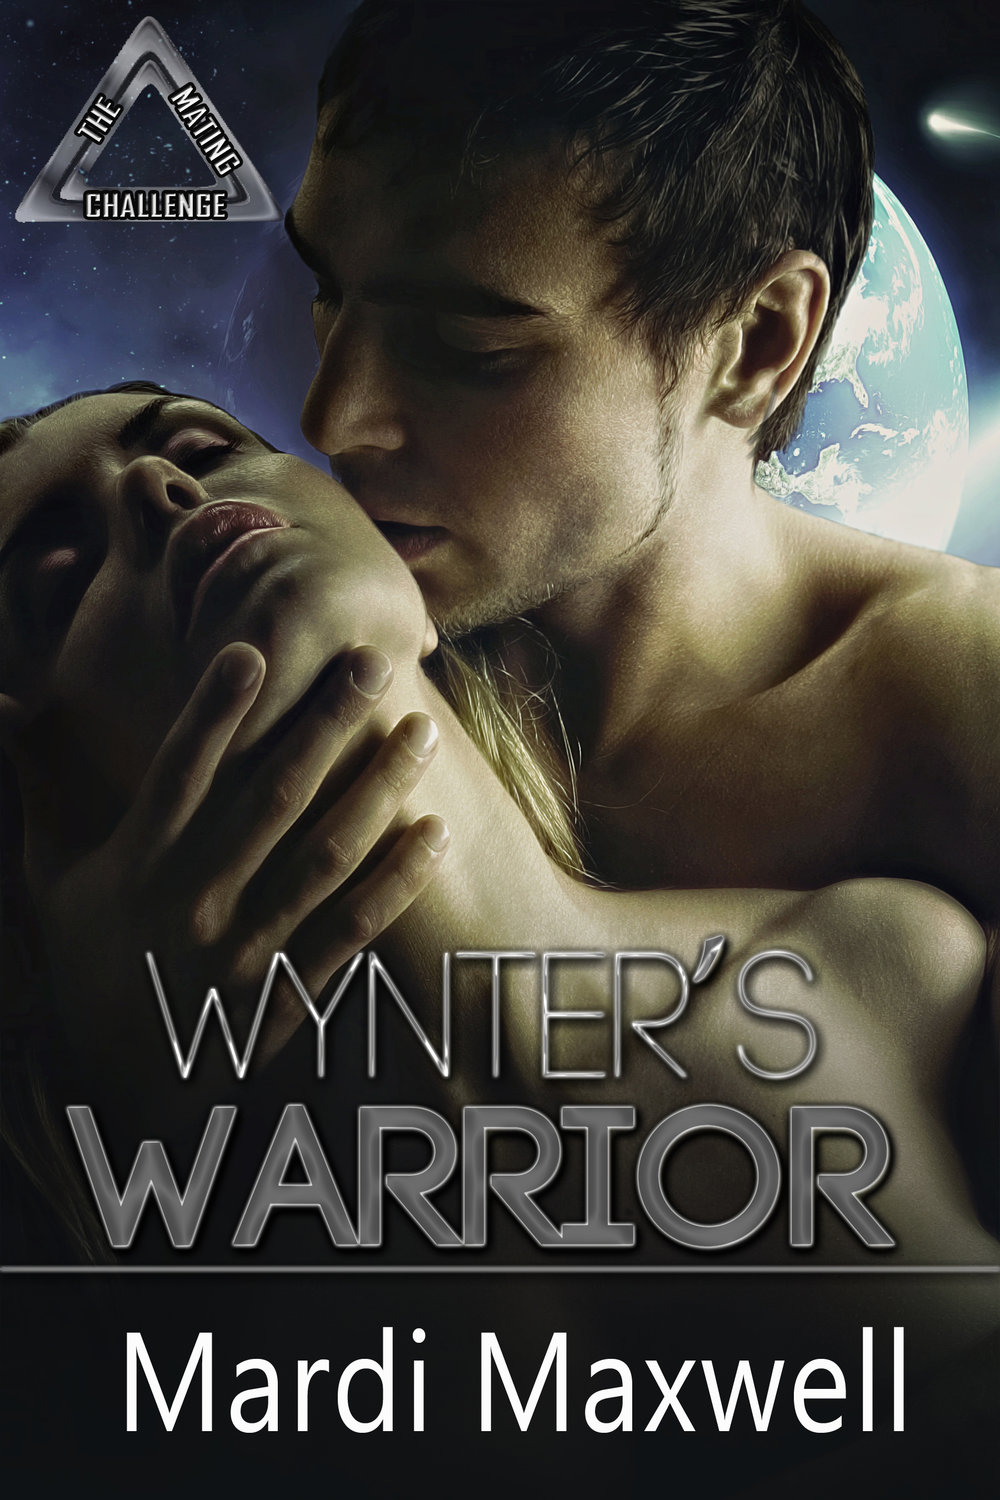 Wynter's Warrior - An alien alliance fleeing a common enemy travels through space seeking a new home. When they reach Earth they warn humanity that the Vagar will reach and attack Earth within a year. Earth's leaders negotiate a deal with the Alliance. In exchange for their advanced technology and their help in fighting the Vagar they'll be granted the right to settle on Earth and seek mates among the Earth females. The Alliance agrees but warns humanity that each Alliance member is a warrior race with its own cultural believes and rituals, but the one need they have one in common is the Mating Challenge. The Challenge is different for each race but any Earth female who volunteers to be the mate of an alien warrior will have to face it. Losing is not an option.